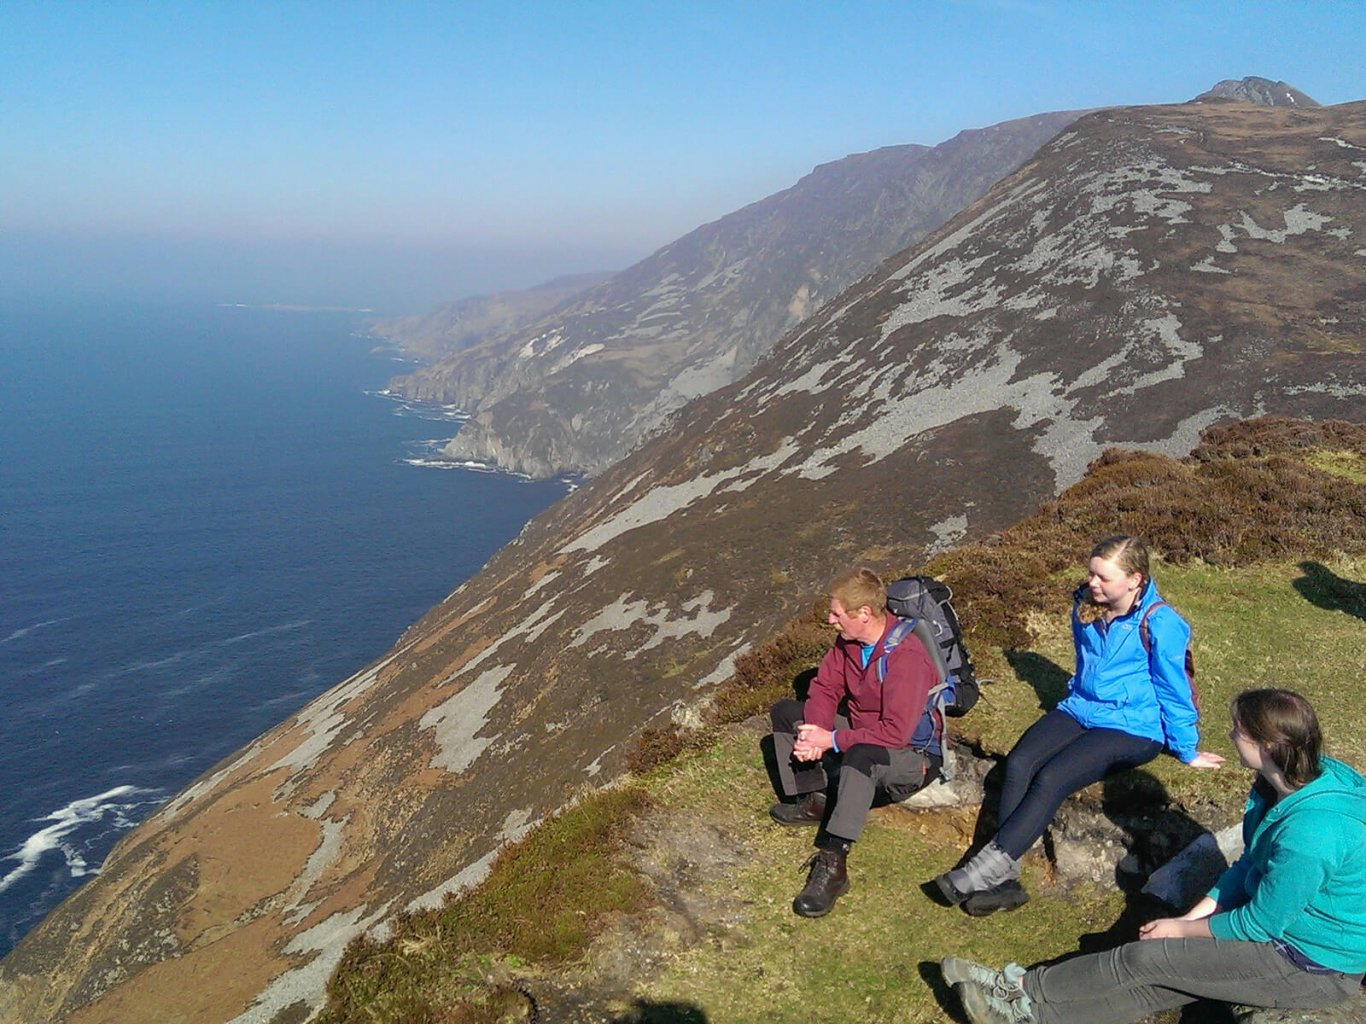 VagaGuide Damien hiking in Ireland at Slieve League with two female tour guests